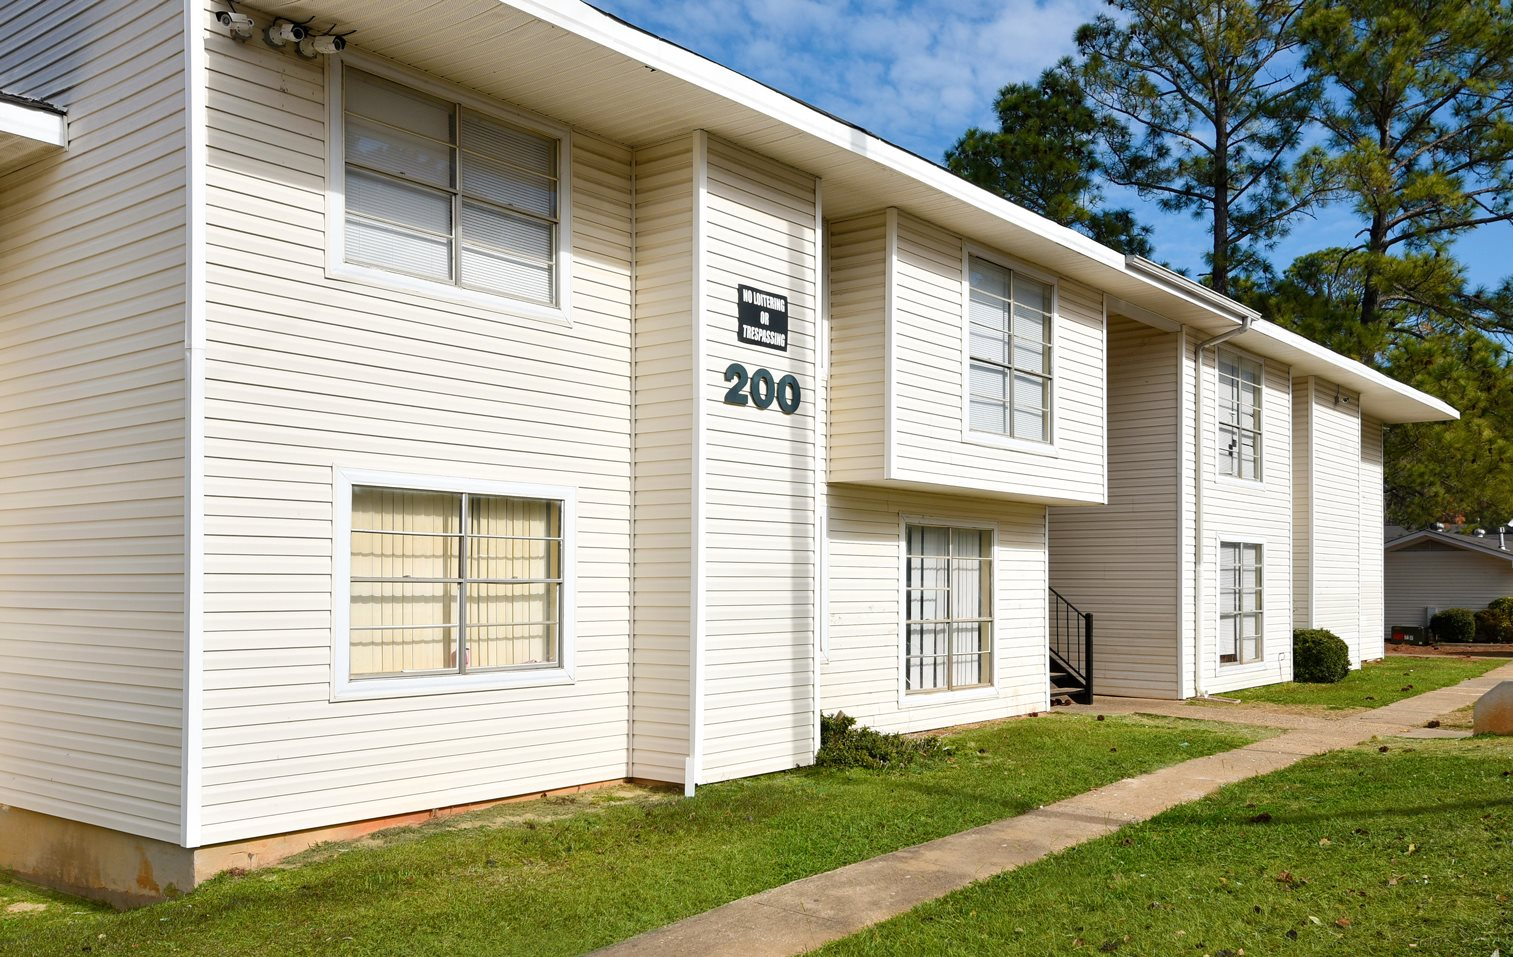 Forrester Gardens Apartments In Tuscaloosa Al